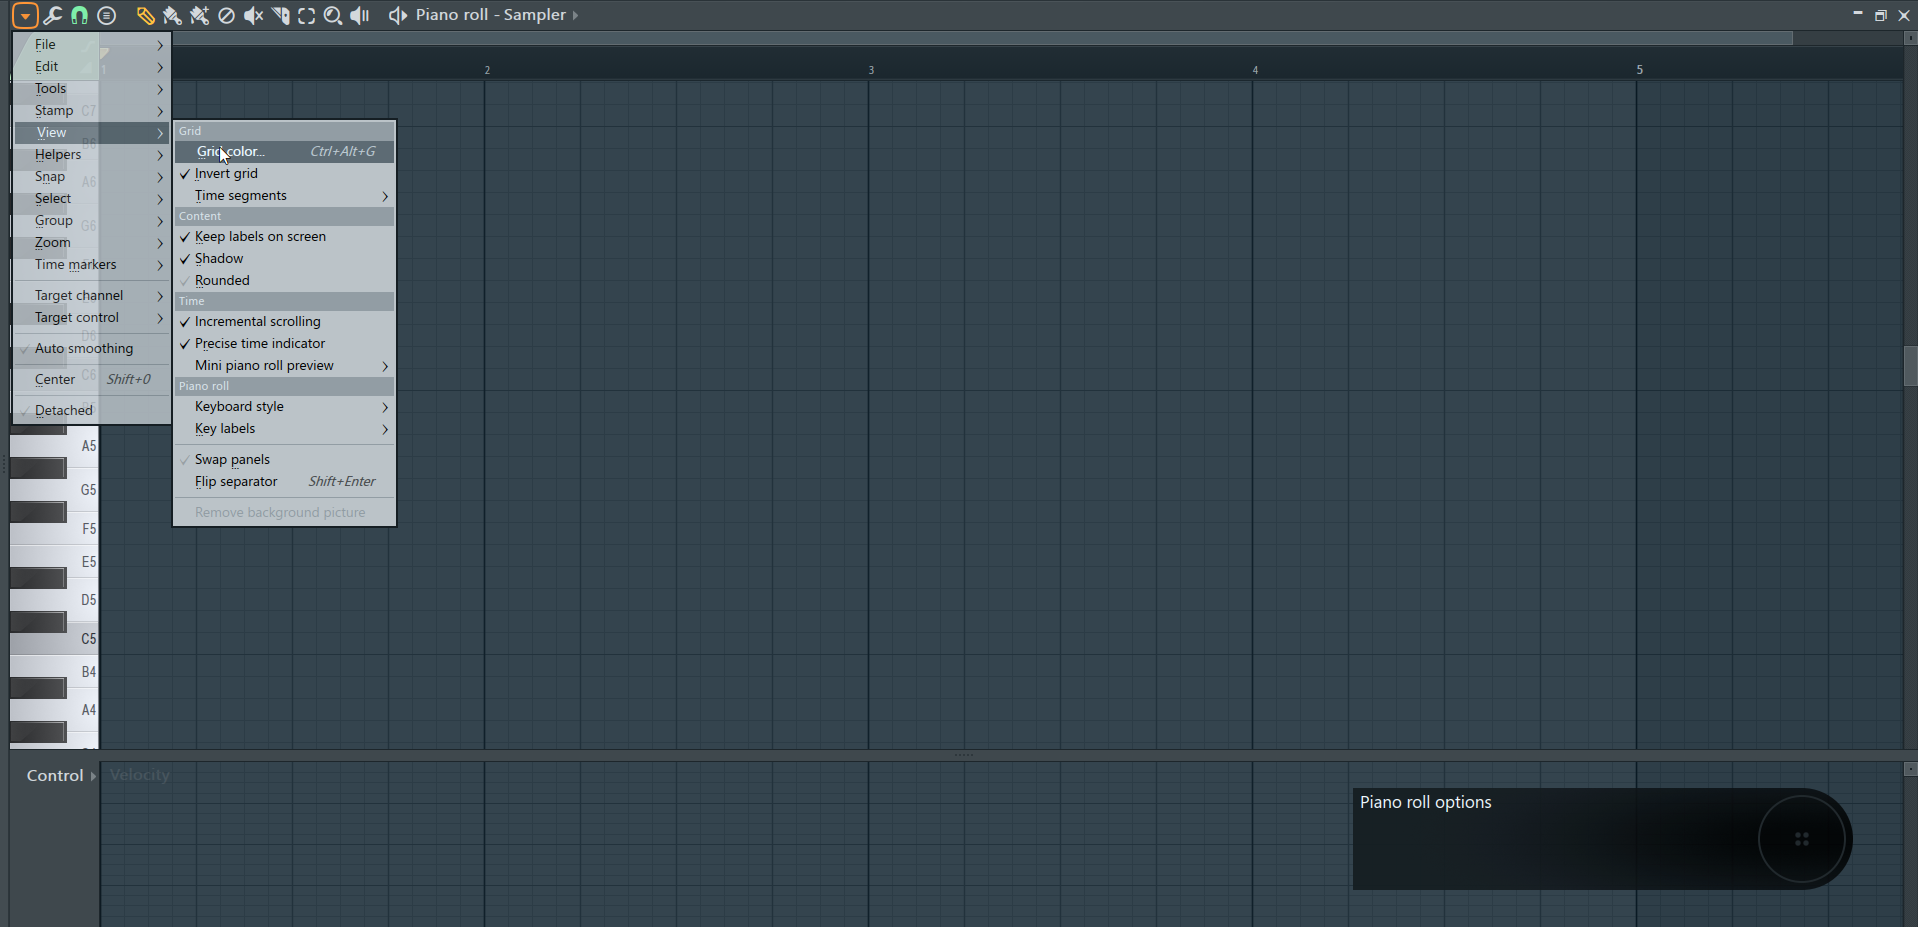 How To Change The Background Color of FL Studio's Piano Roll and Playlist_2 (Grid Color).png